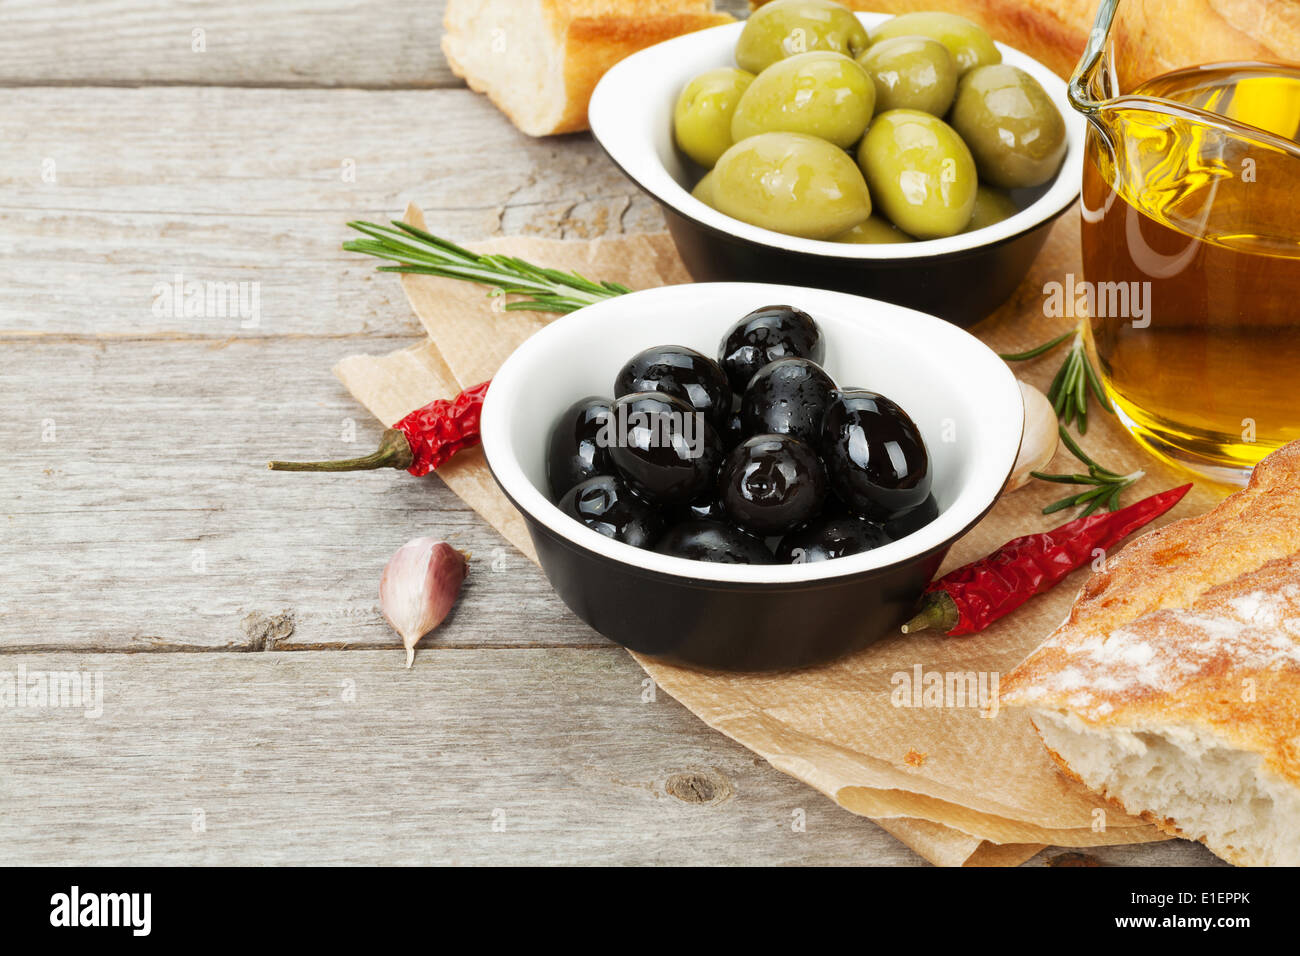 Italian food appetizer of olives, bread and spices on wooden table background with copy space - Stock Image